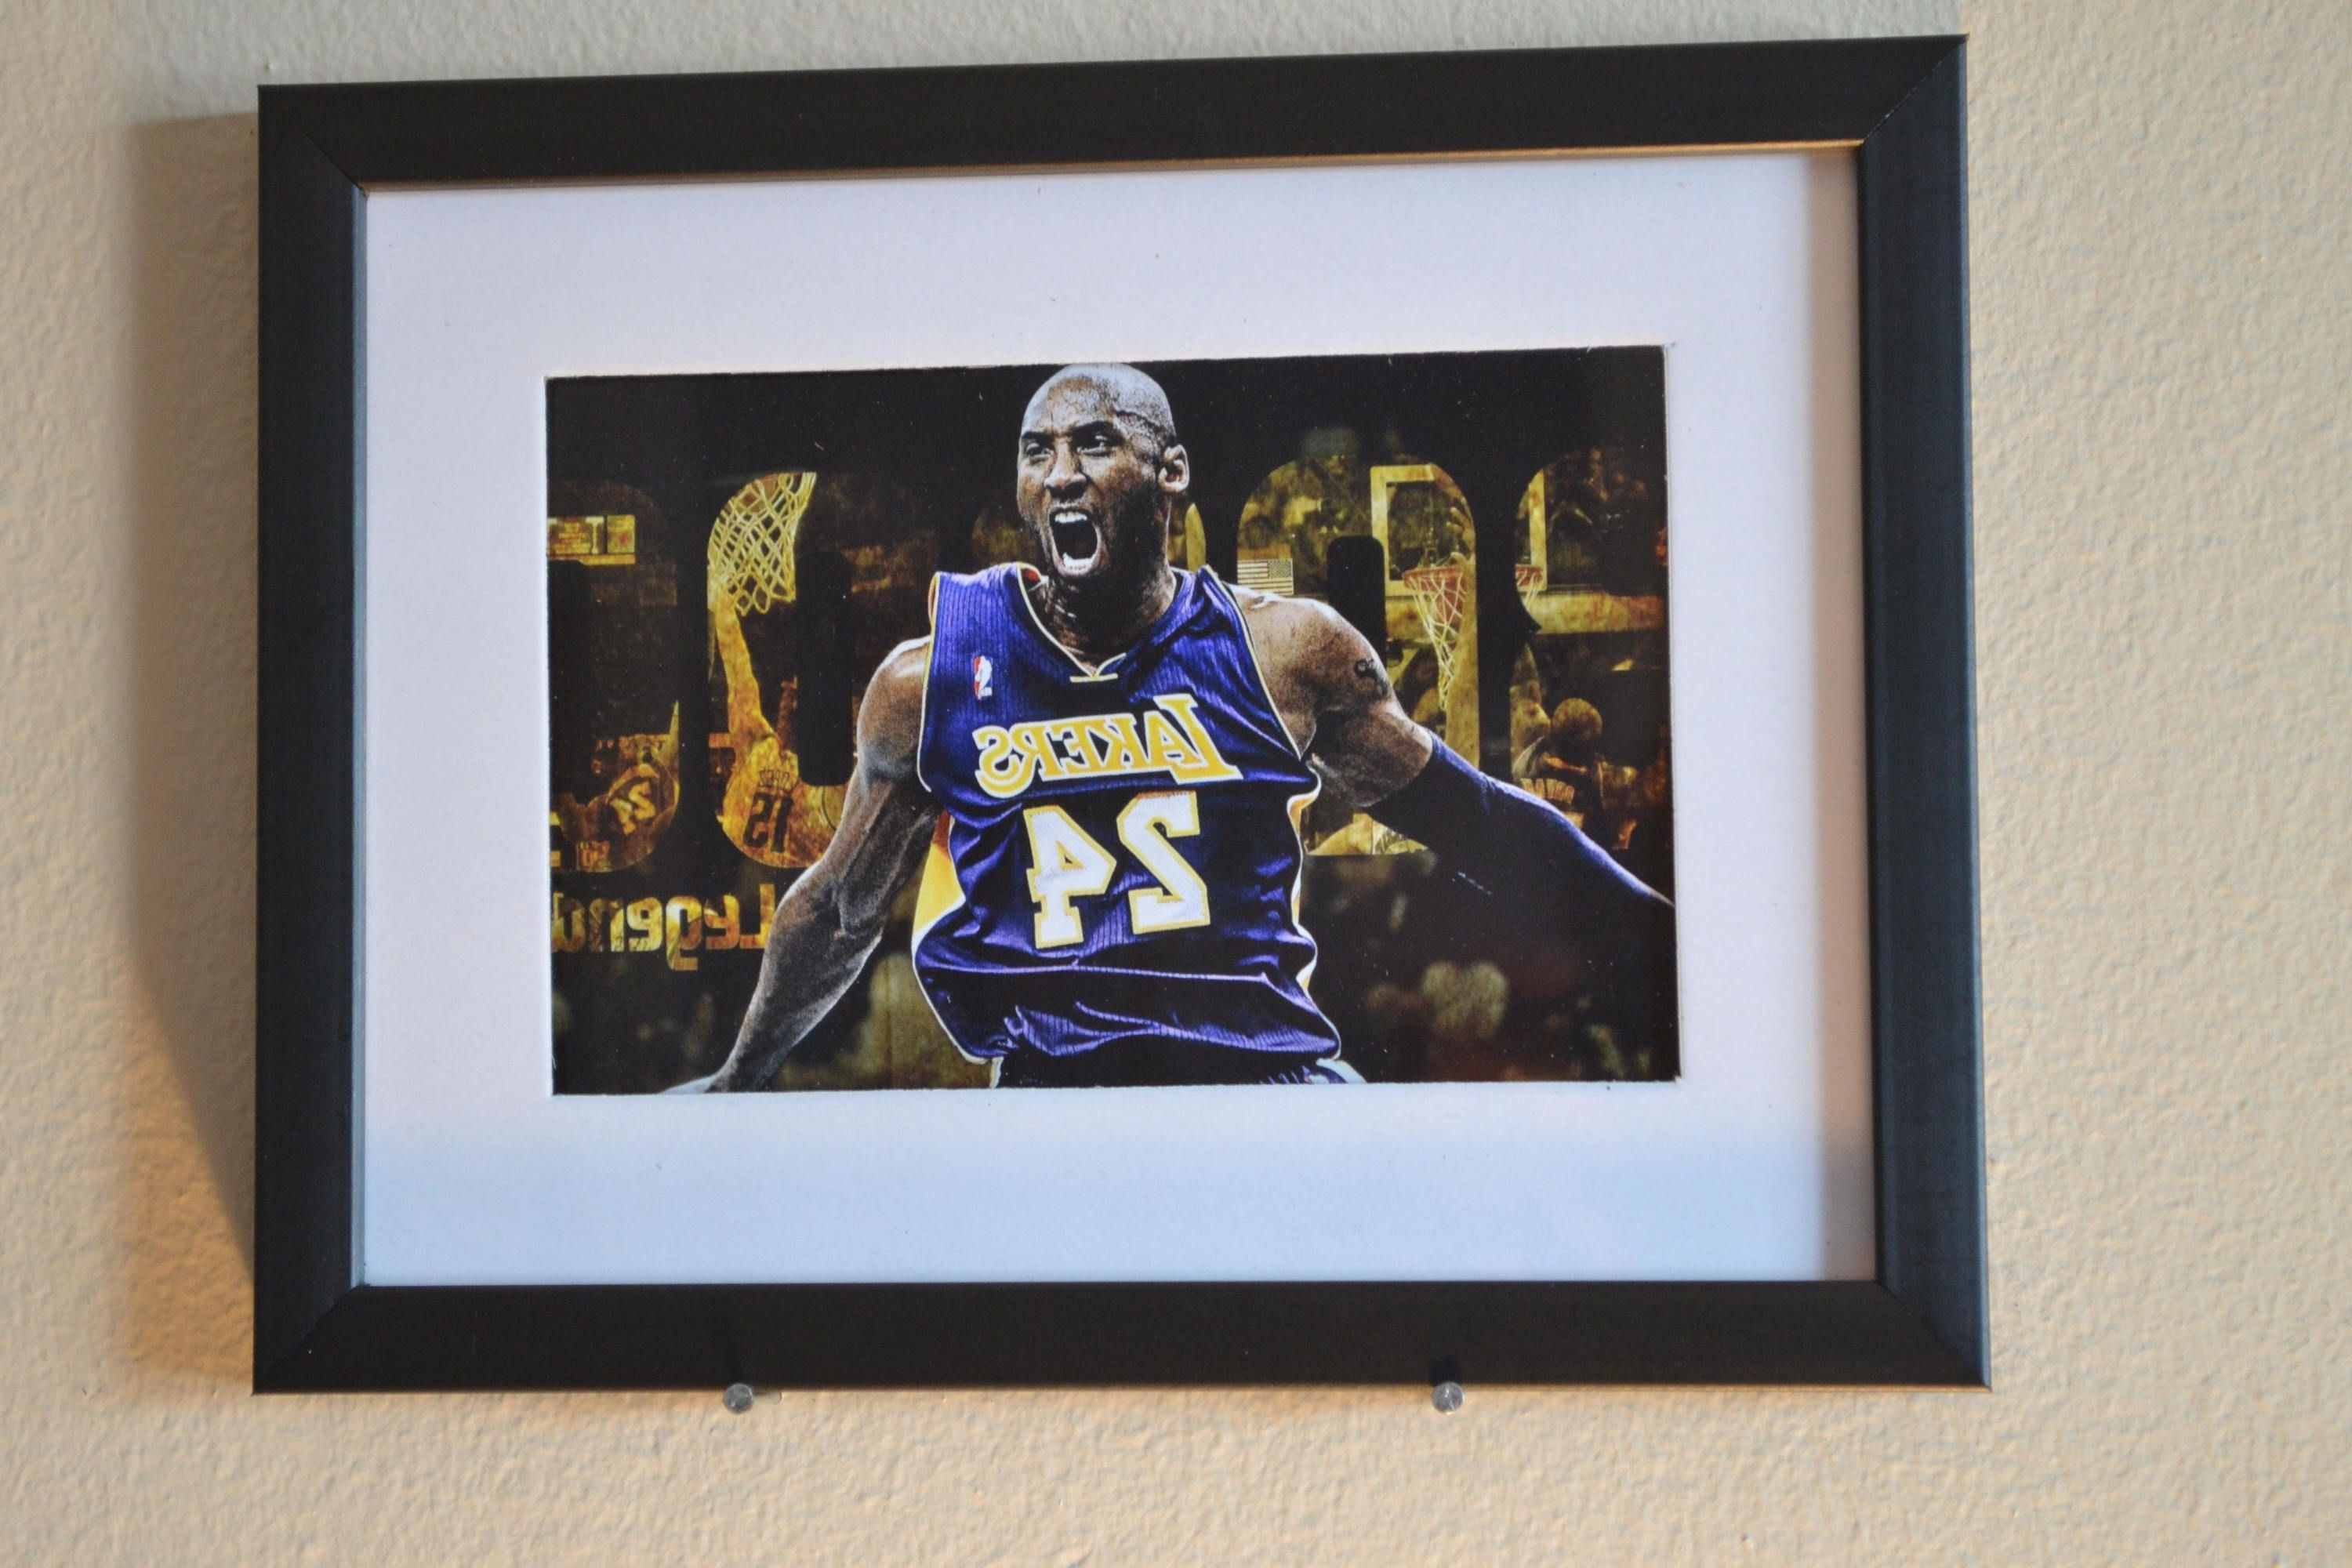 "2017 Sports Wall Art With Regard To Sports Wall Art Kobe Bryant ""fury"" Best Selling Item (View 13 of 20)"